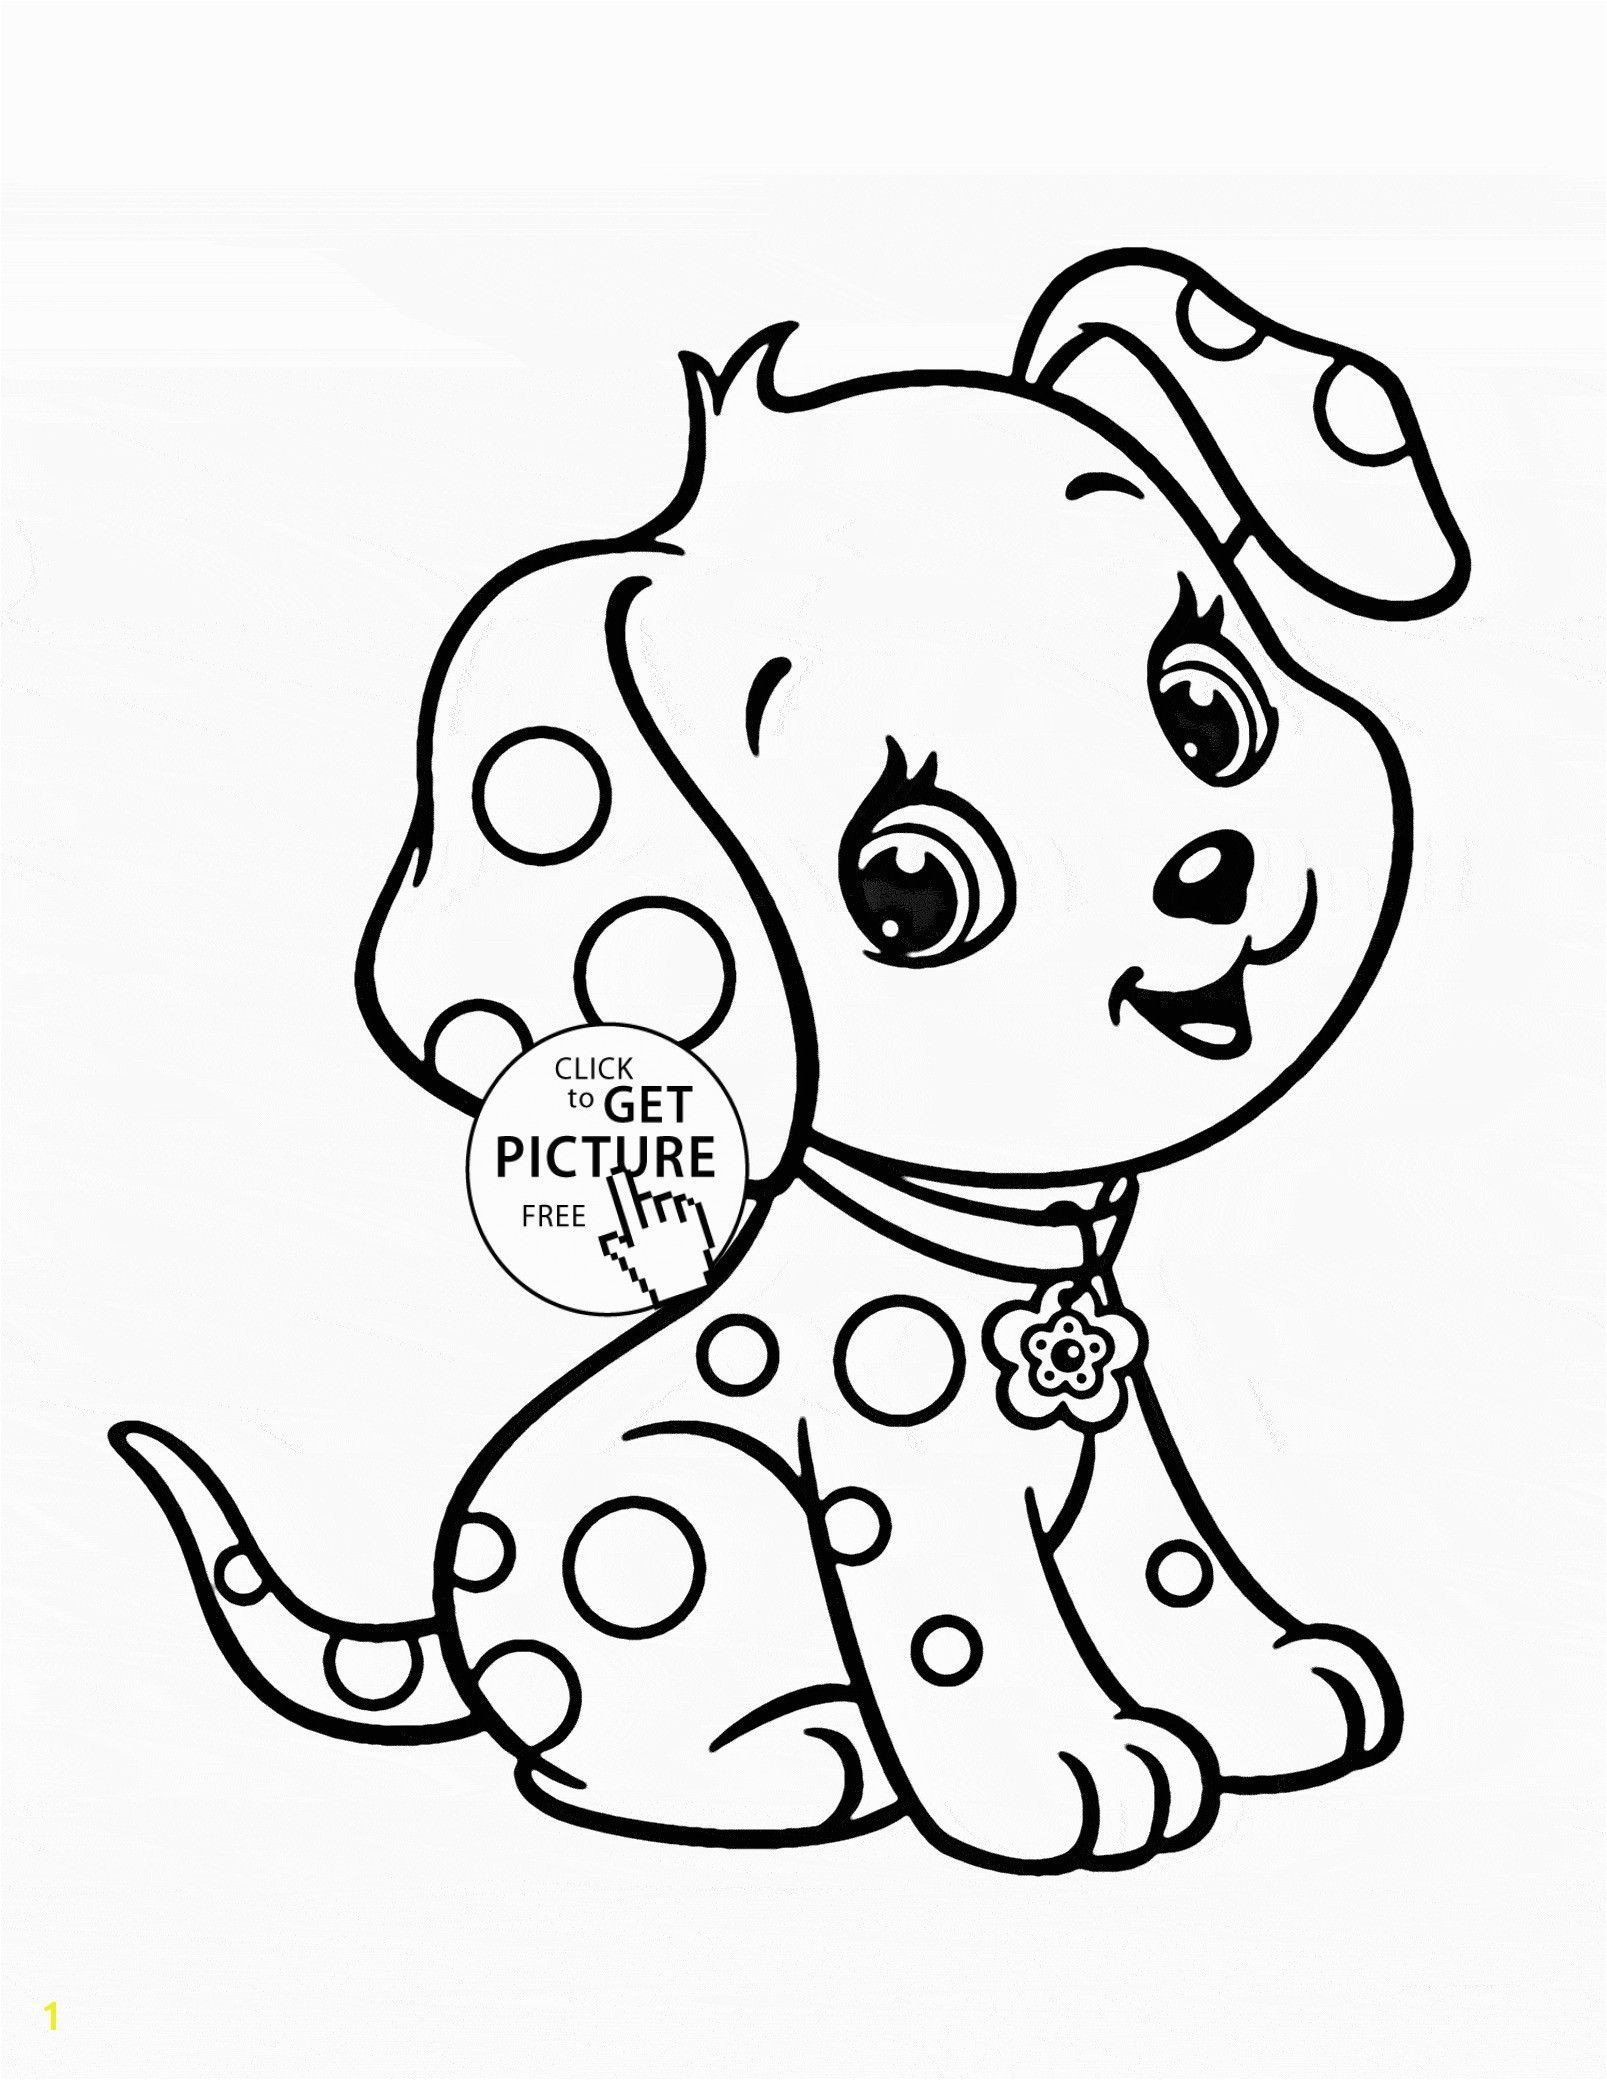 Baby Animal Coloring Pages Awesome Cute Eyes Coloring Pages Beautiful Cute Cartoon Baby Ani Unicorn Coloring Pages Puppy Coloring Pages Princess Coloring Pages